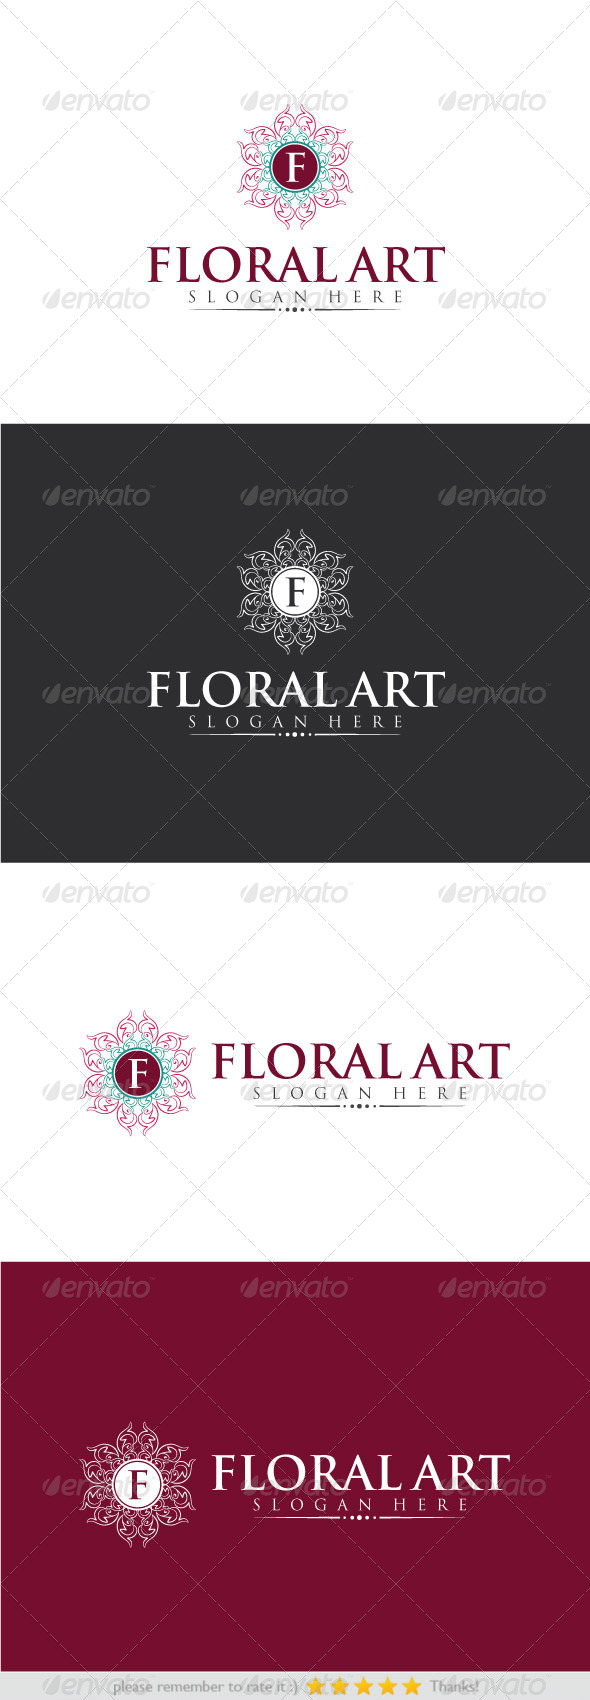 GraphicRiver Floral Art 8242466